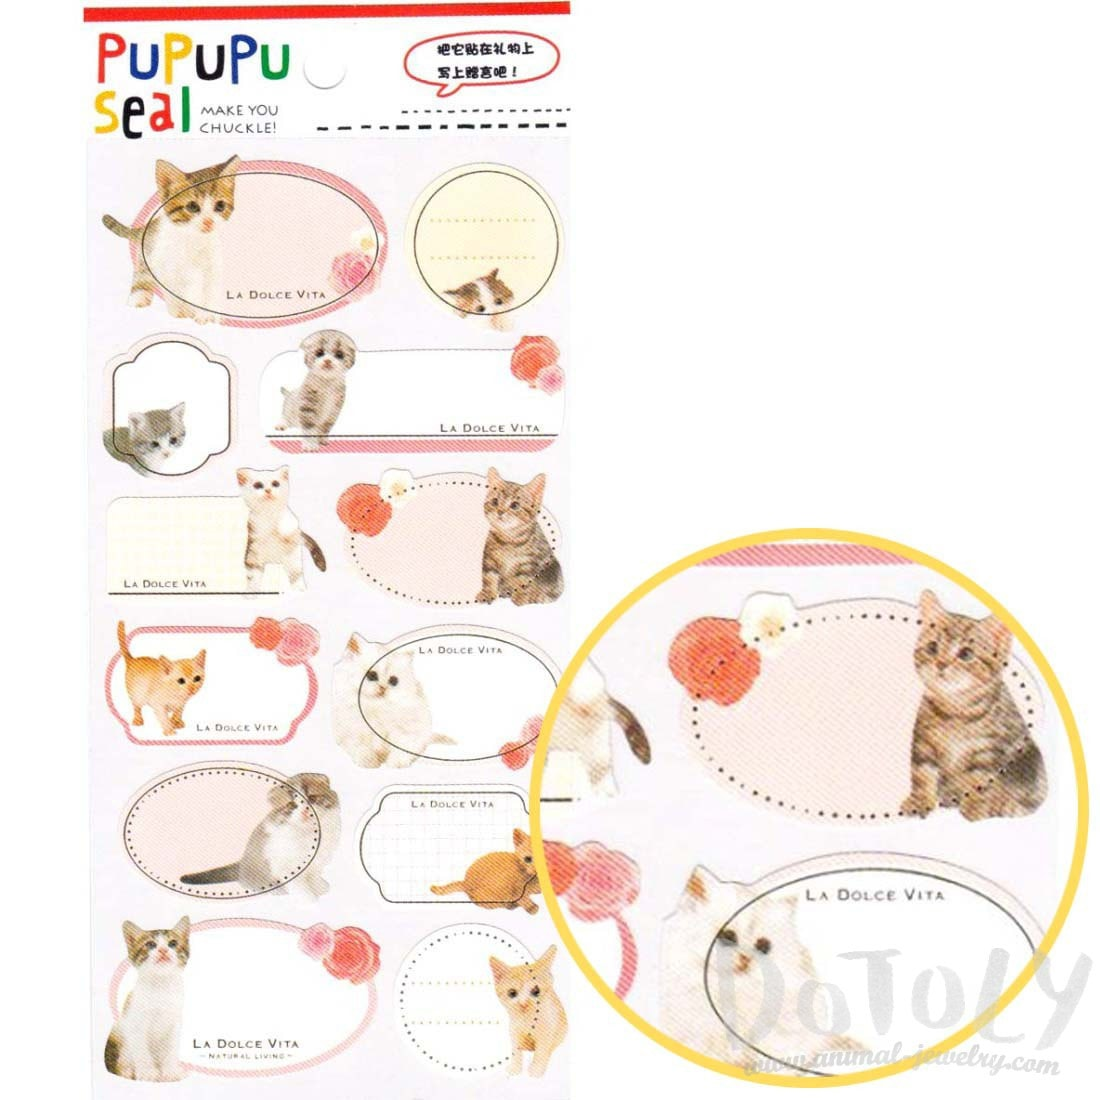 Kitty Cat Label Glossy Photo Stickers for Scrapbooking